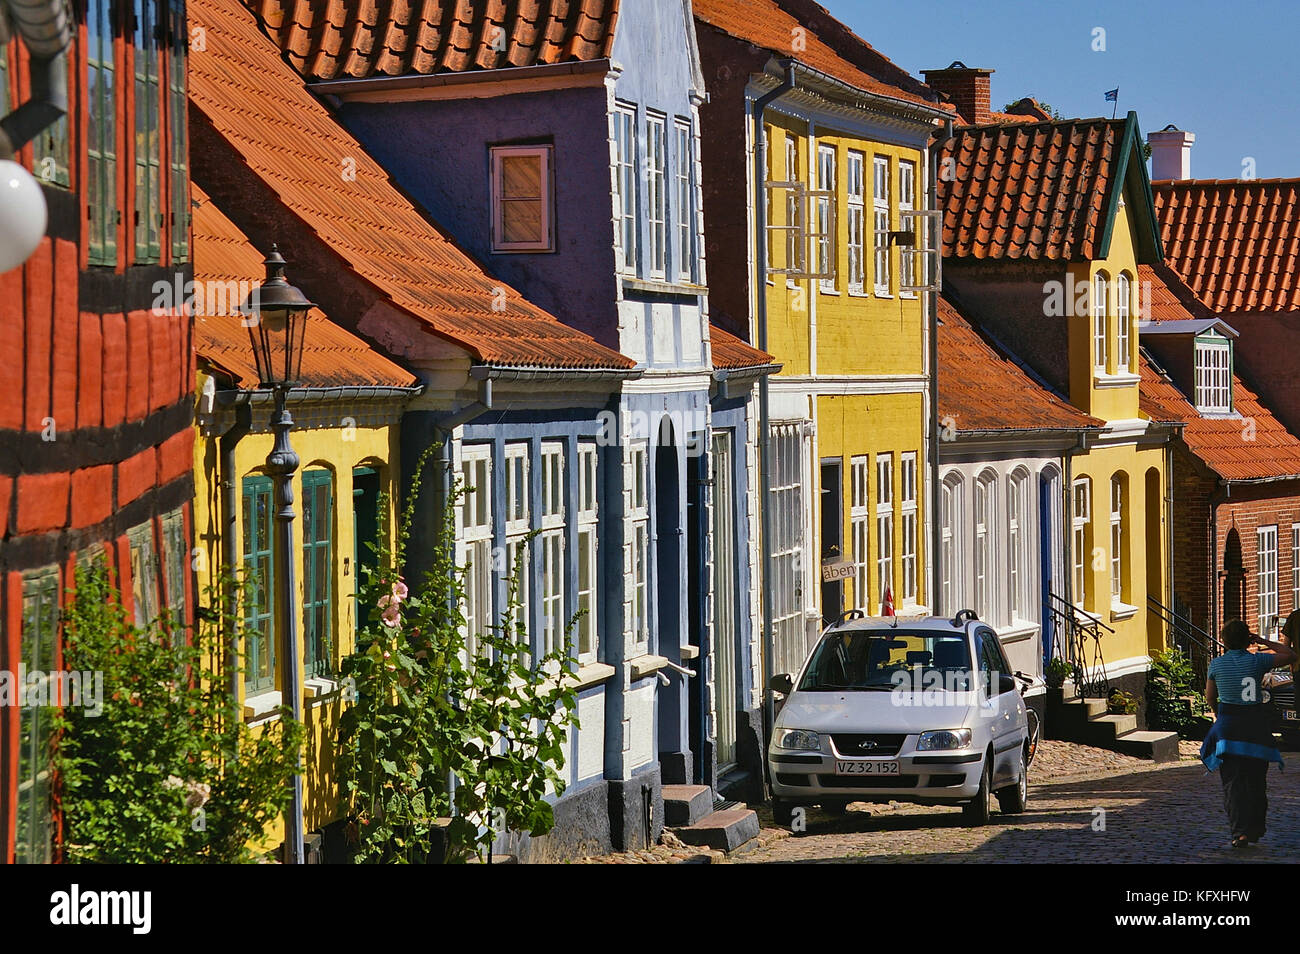 Aeroskobing, Denmark - July 4th, 2012 - Narrow cobblestone street on the island of Aero with colorful historic residential - Stock Image